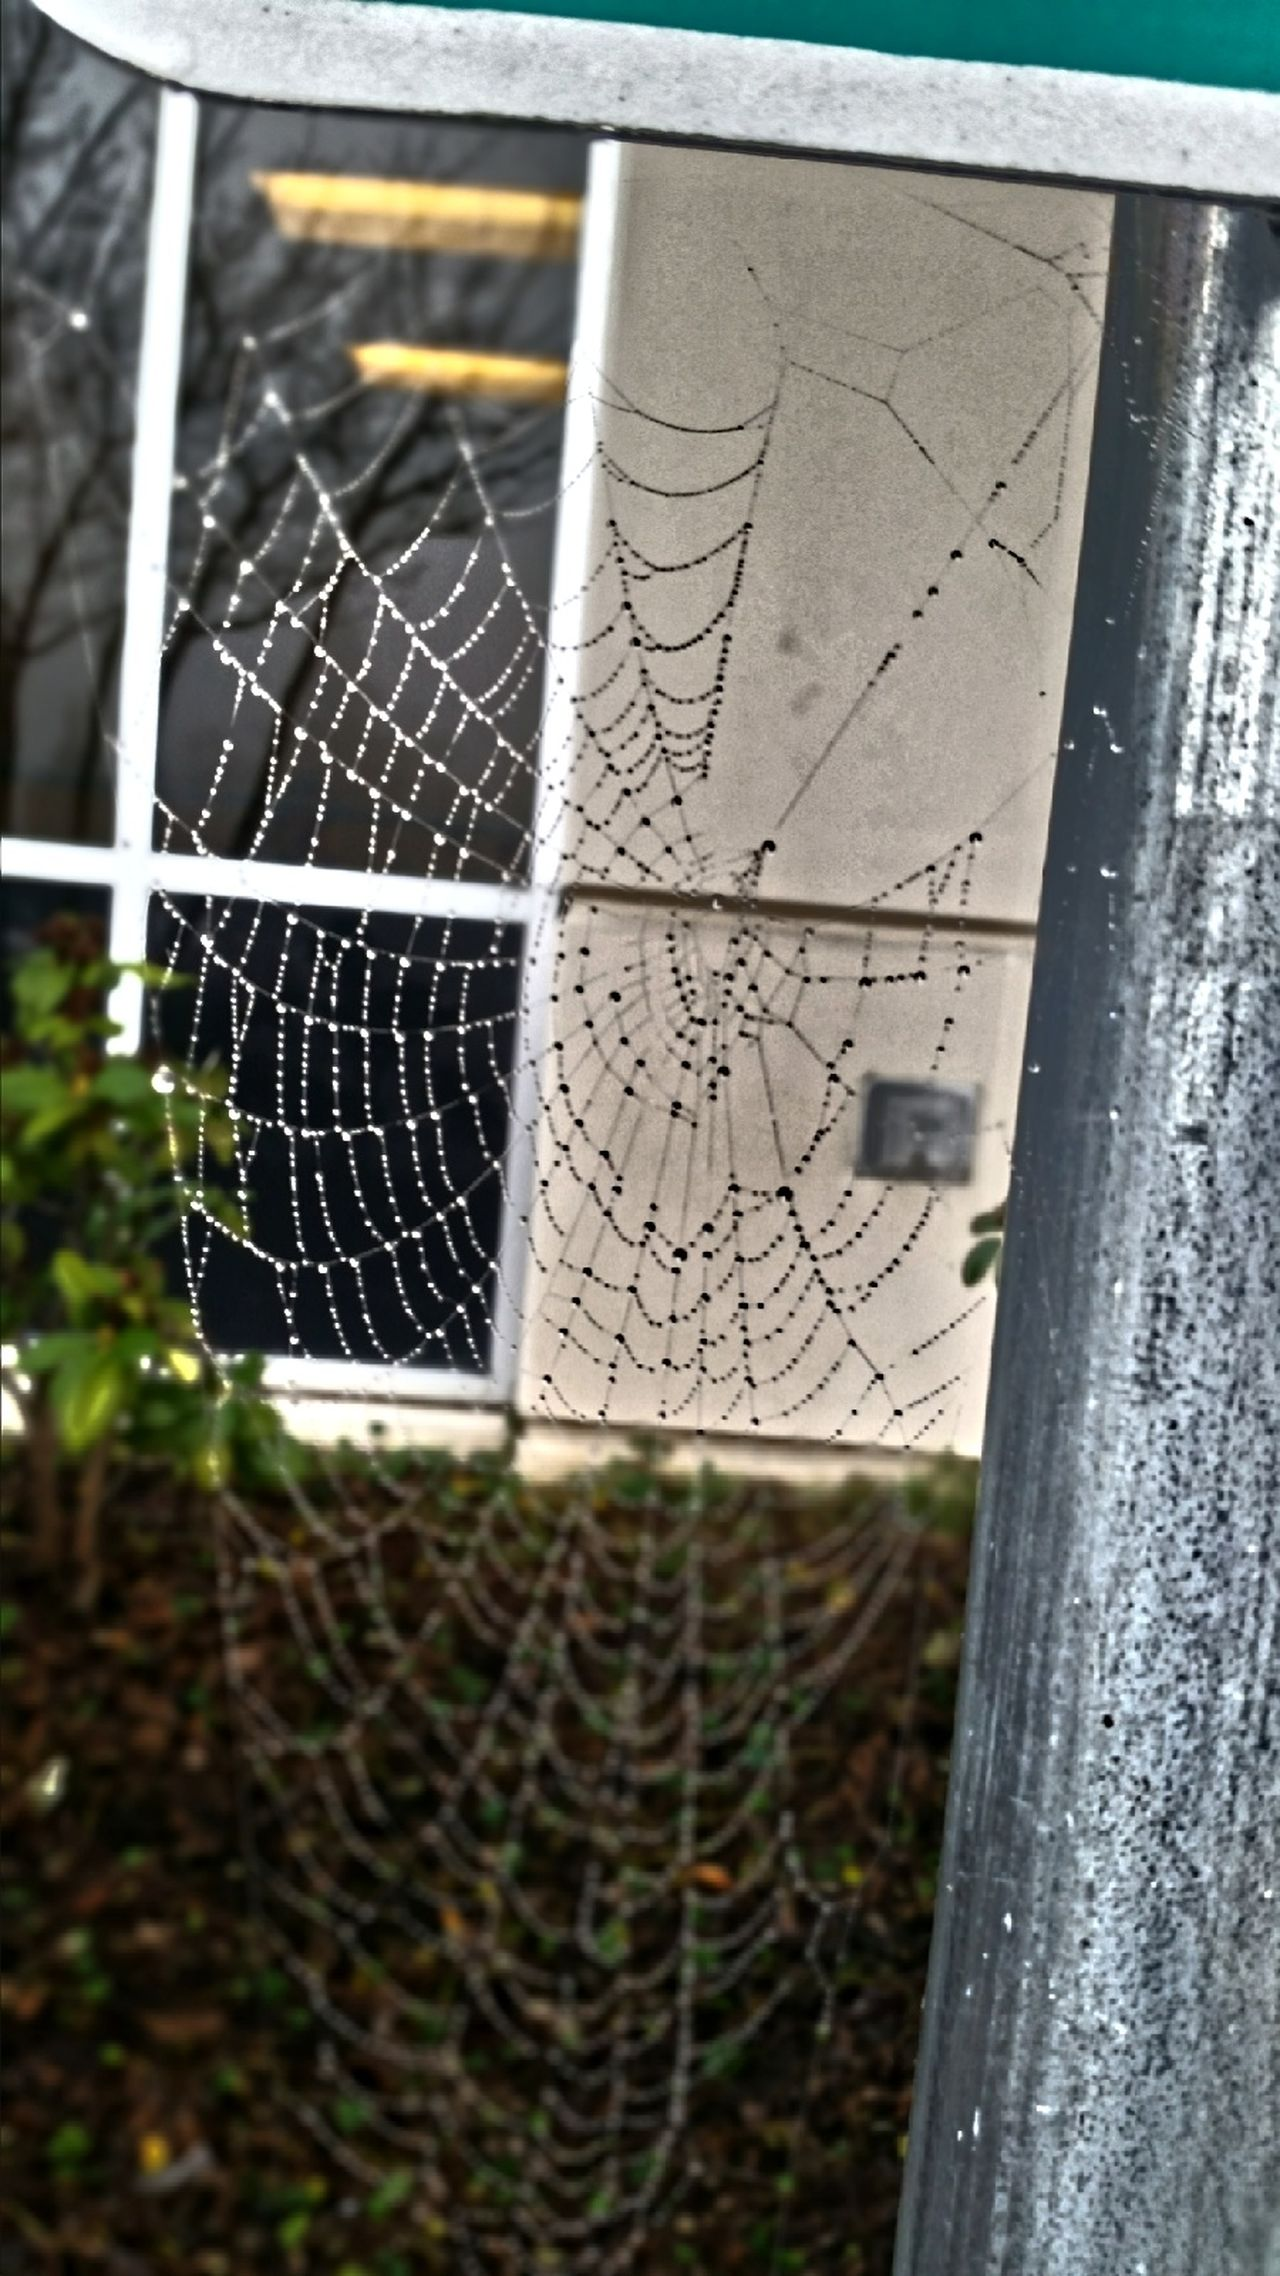 Nature's Diversities Spider Web Spider Web And Rain Spider Web, Dew, Morning, Nature Nature Photography Naturelovers Nature_collection Tranquil Scene